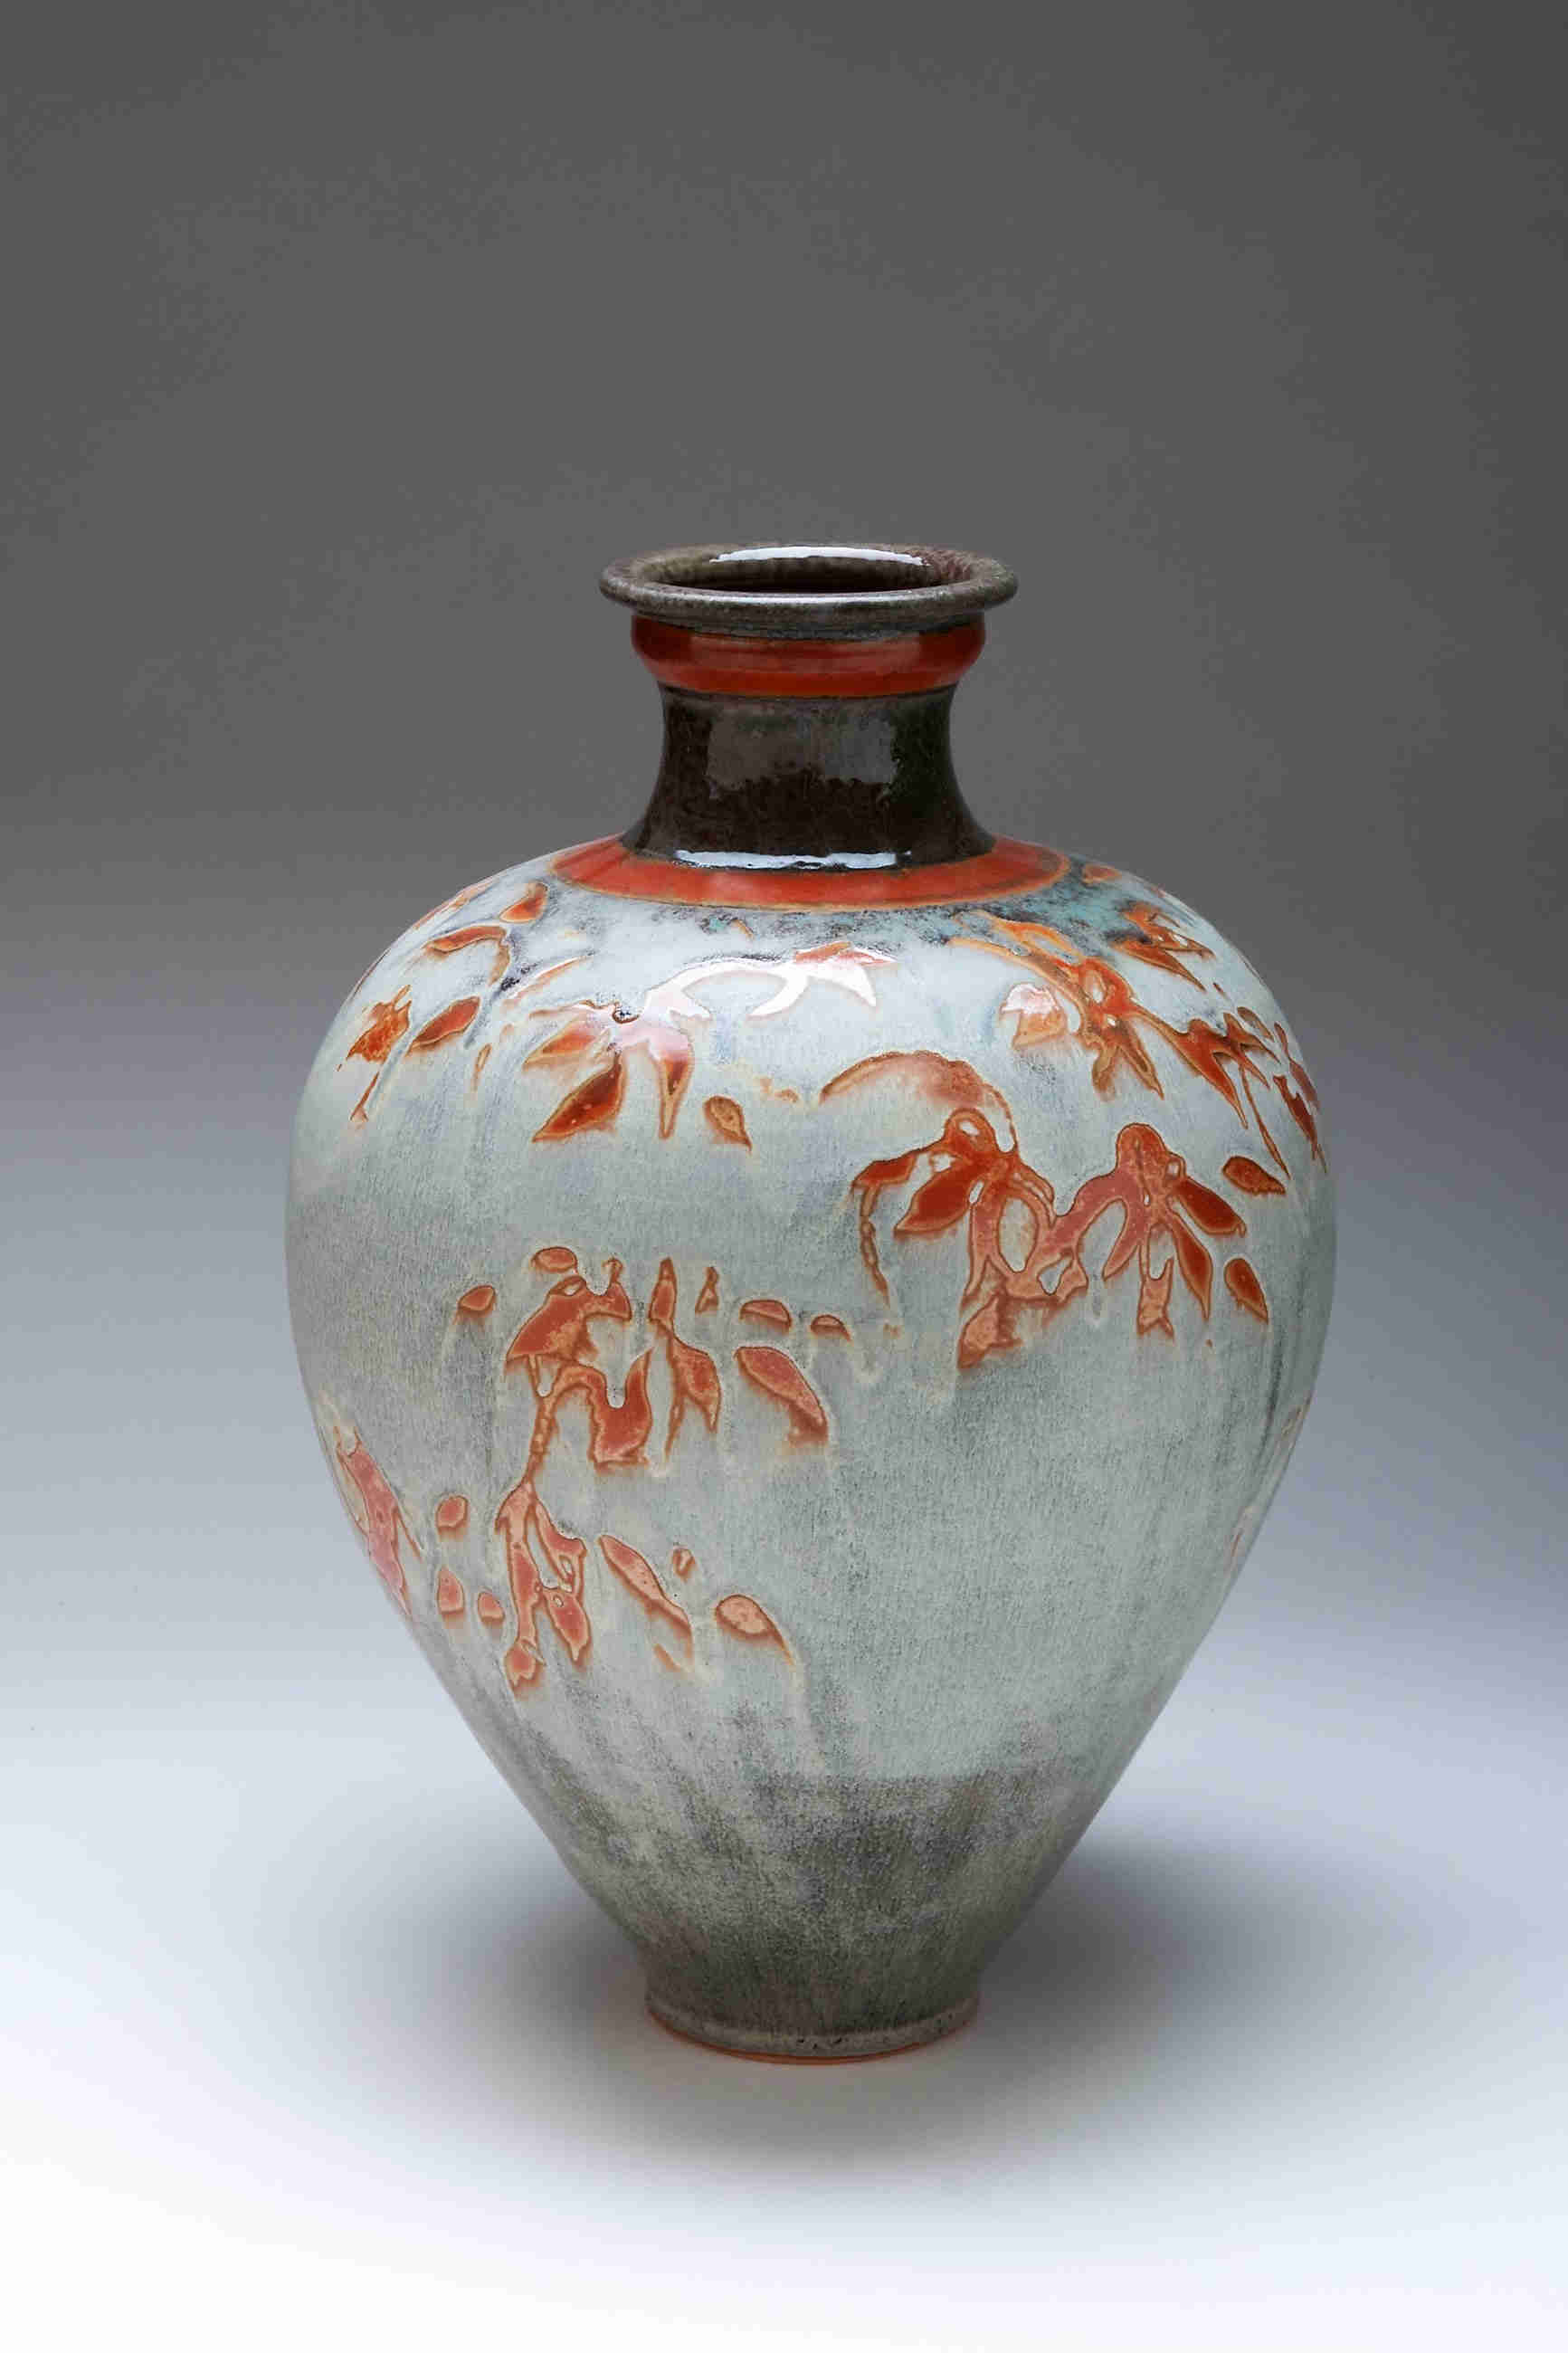 Valerie Metcalfe. 2013. Leaves in the Mist. Grey painted vase. Porcelain,. 40.6 cm h.